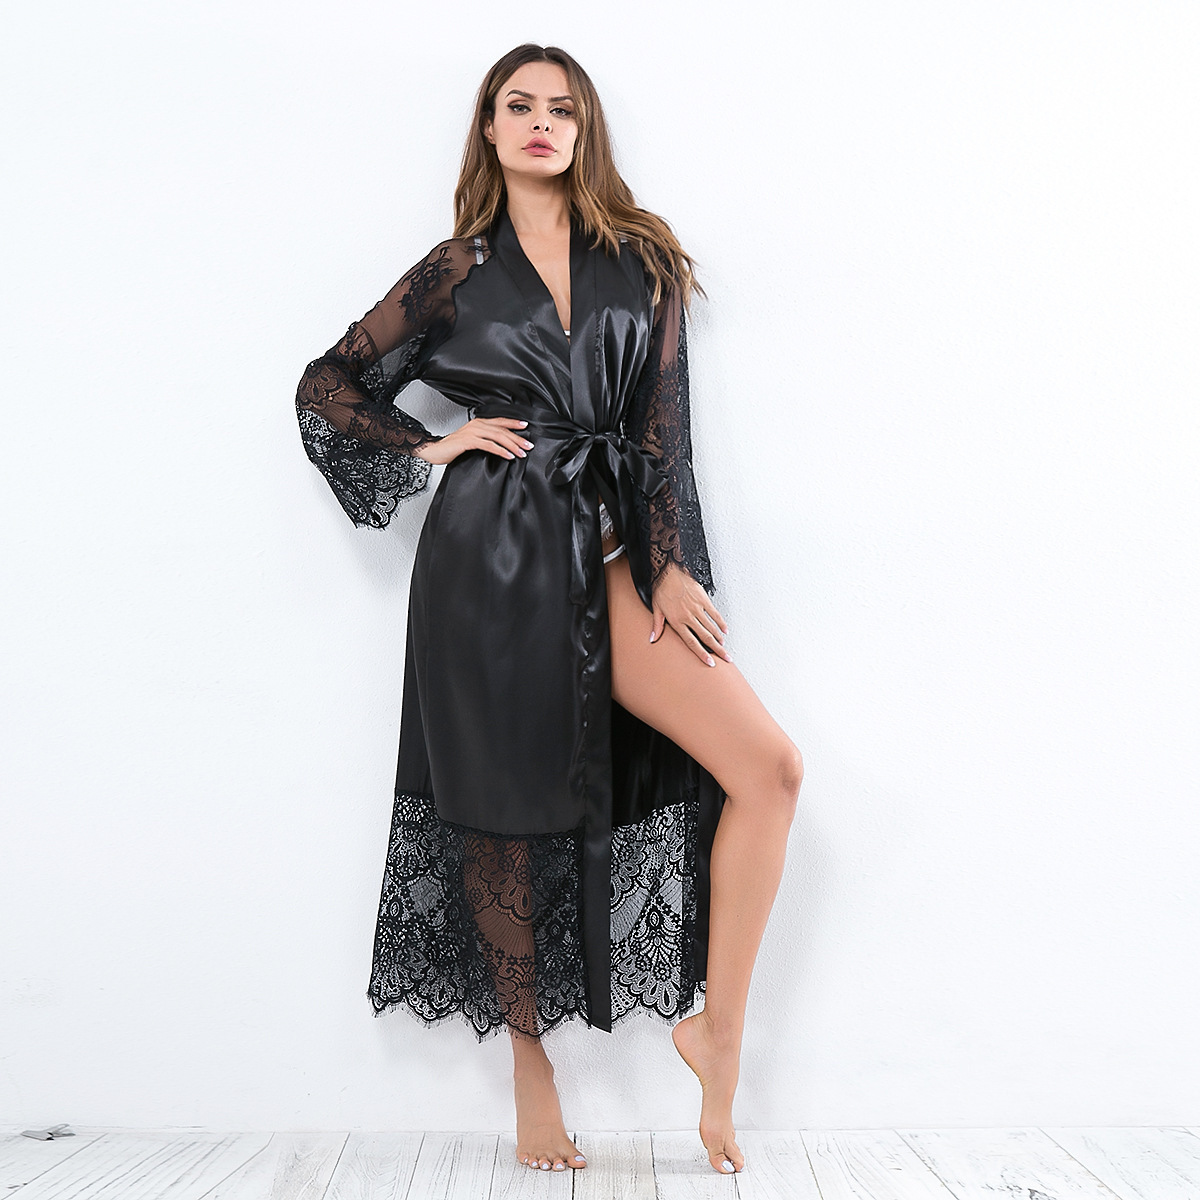 Wontive Women Sexy Silk Dressing Babydoll Lace Lingerie Belt Bathrobe Nightwear Women Sexy Nightwear Plus Size Bathrobes